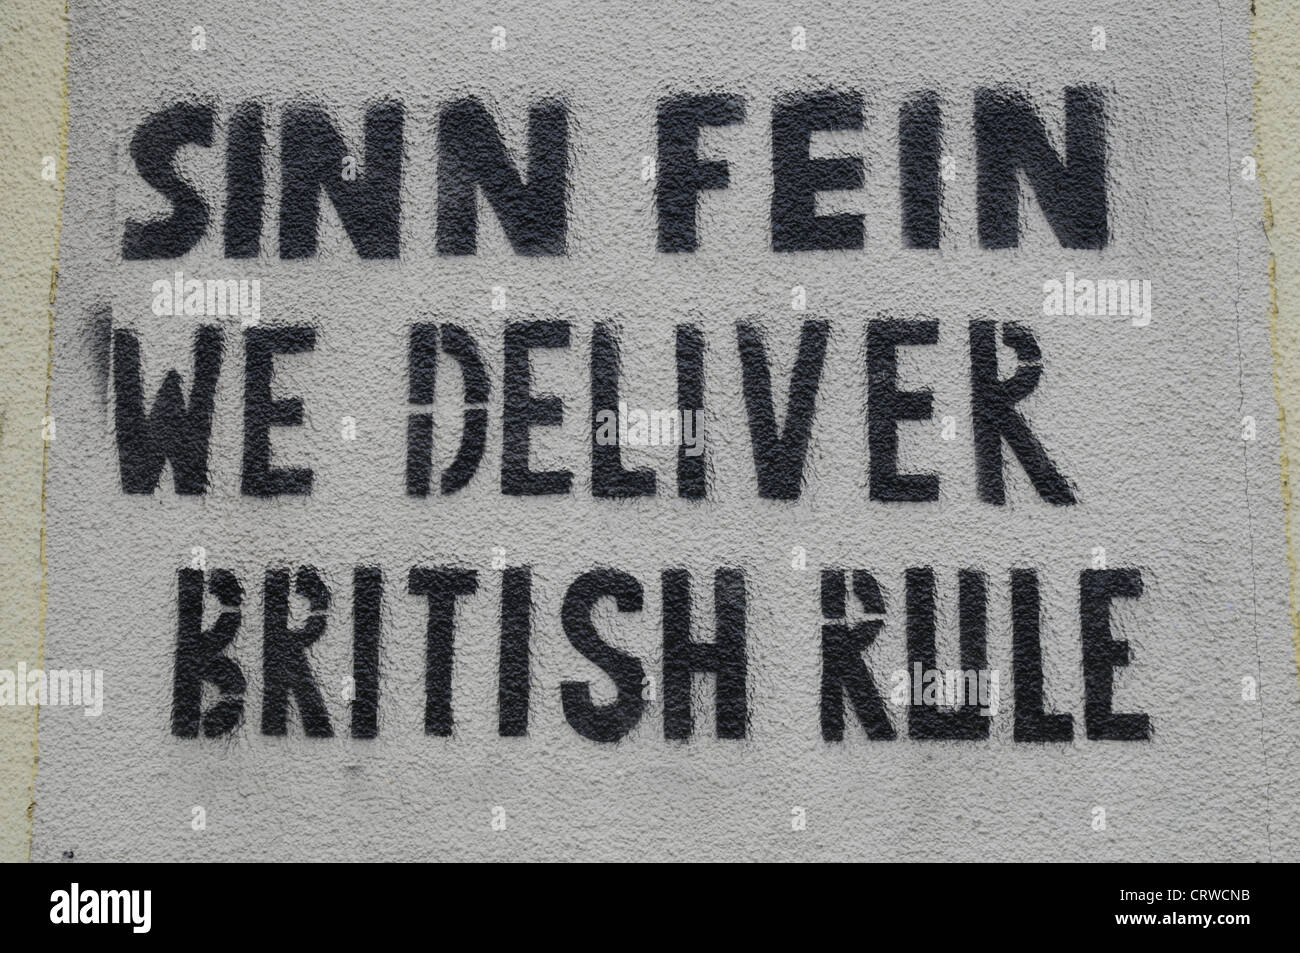 Sinn Fein we deliver British Rule, Graffiti sprayed on a wall in Newry, Co.Down, Northern Ireland - Stock Image